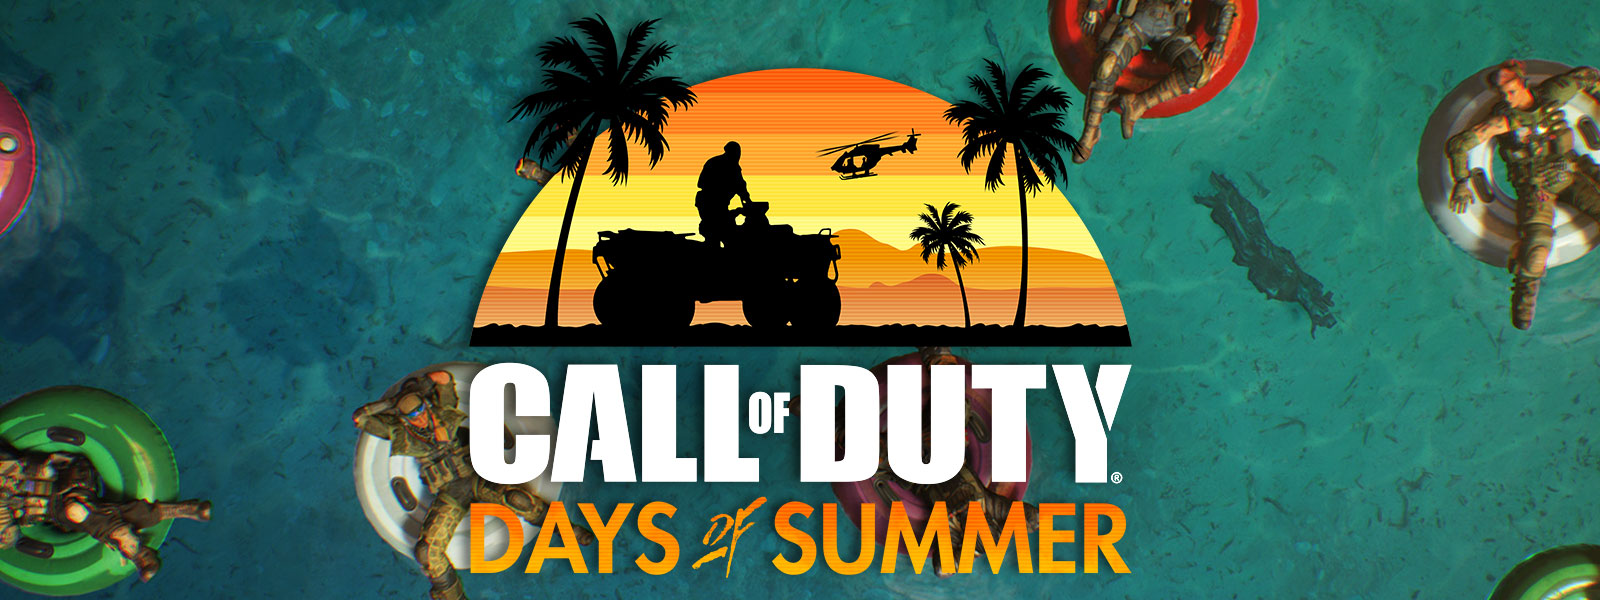 Call of Duty Days of Summer logo, silhouette of a soldier on a four wheeler with palm trees and a helicopter in the background with a sunset on top of an image of soldiers in full military gear floating on inner tubes